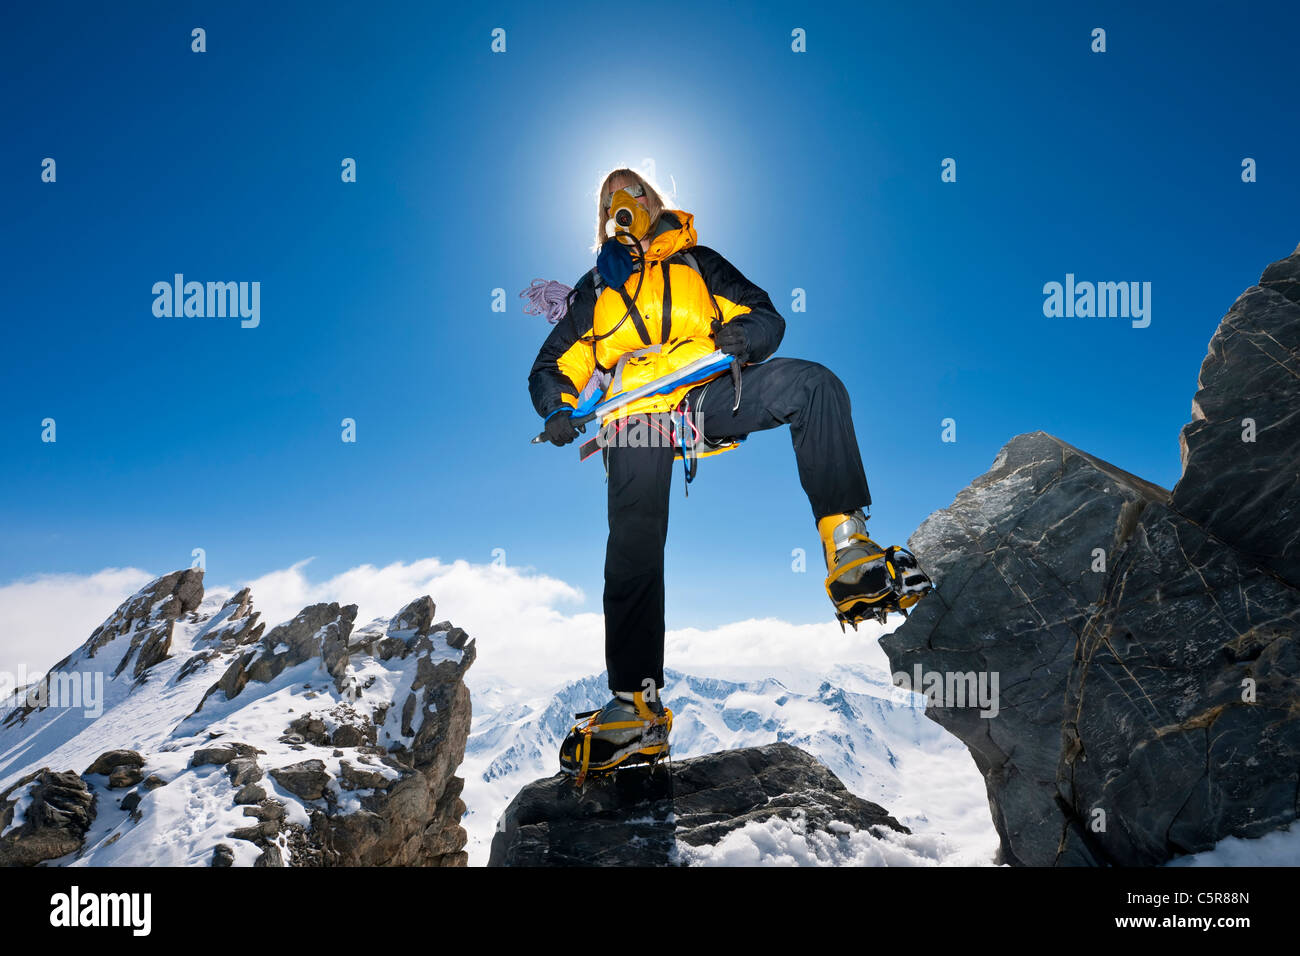 Mountaineer on snowy summits above the clouds. Stock Photo